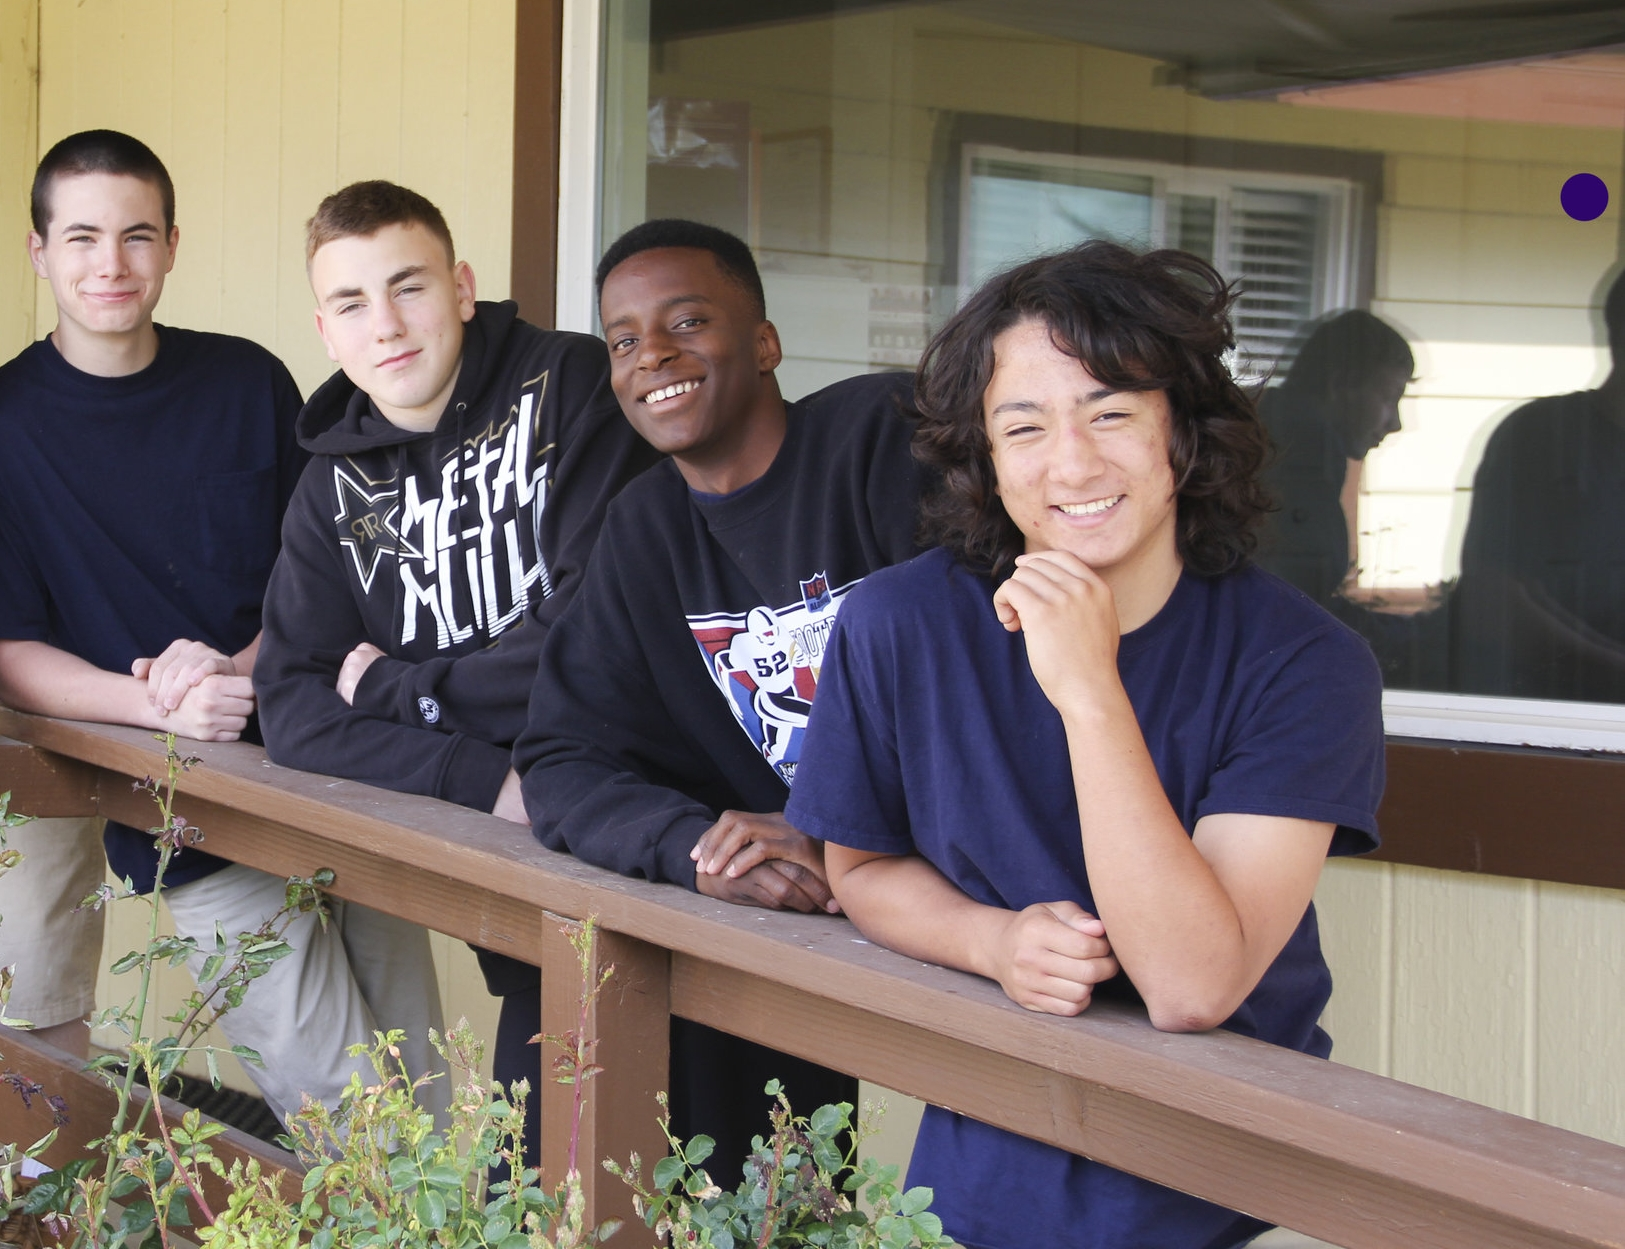 The Teen Challenge Adolescent Boy's Center is where recovery happens for young men 12-17 years of age. Young men struggling to find recovery from anger, abuse, addiction, or alcoholism can get the help and recovery they need from Teen Challenge.